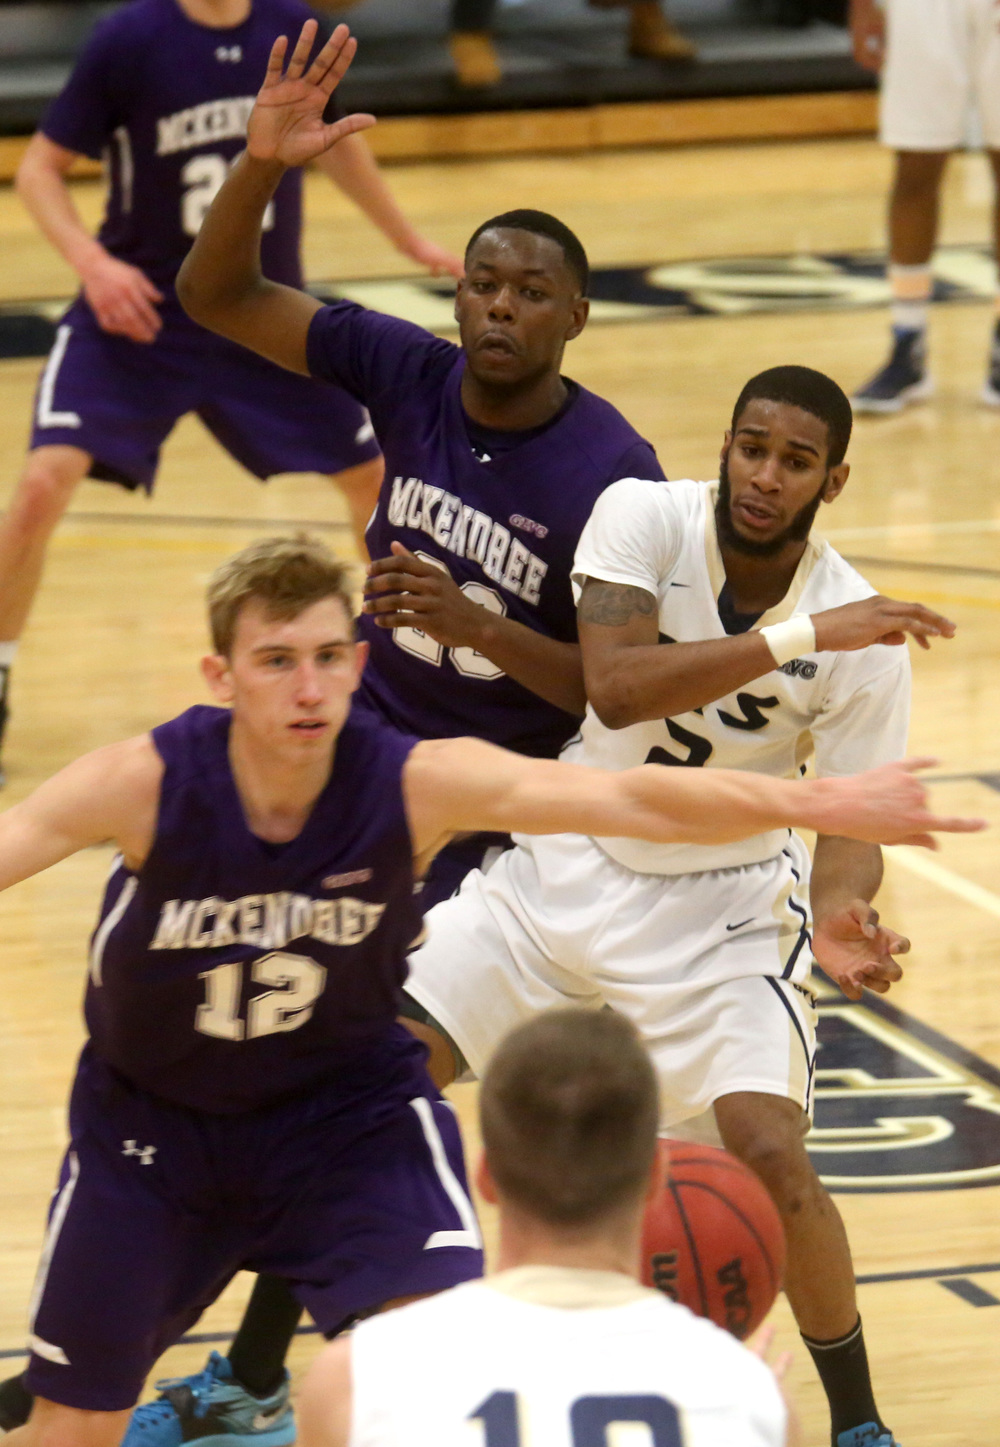 UIS player Davi Austin tries to stay open for a pass by teammate Vince Walker under heavy defense by McKendree. David Spencer/The State Journal Register